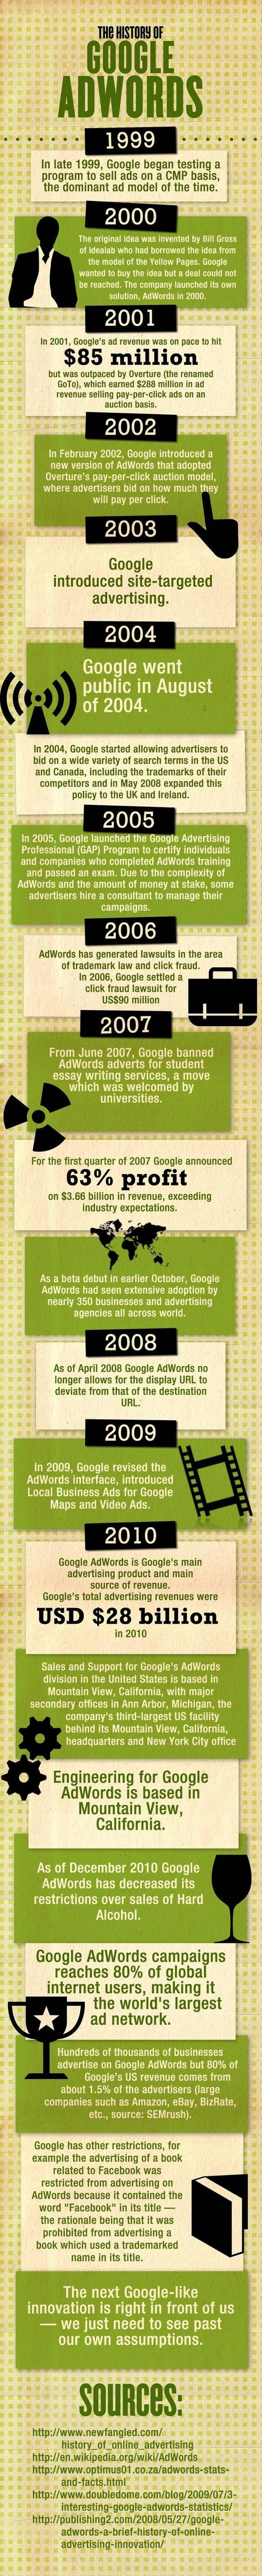 The History of Google Adwords